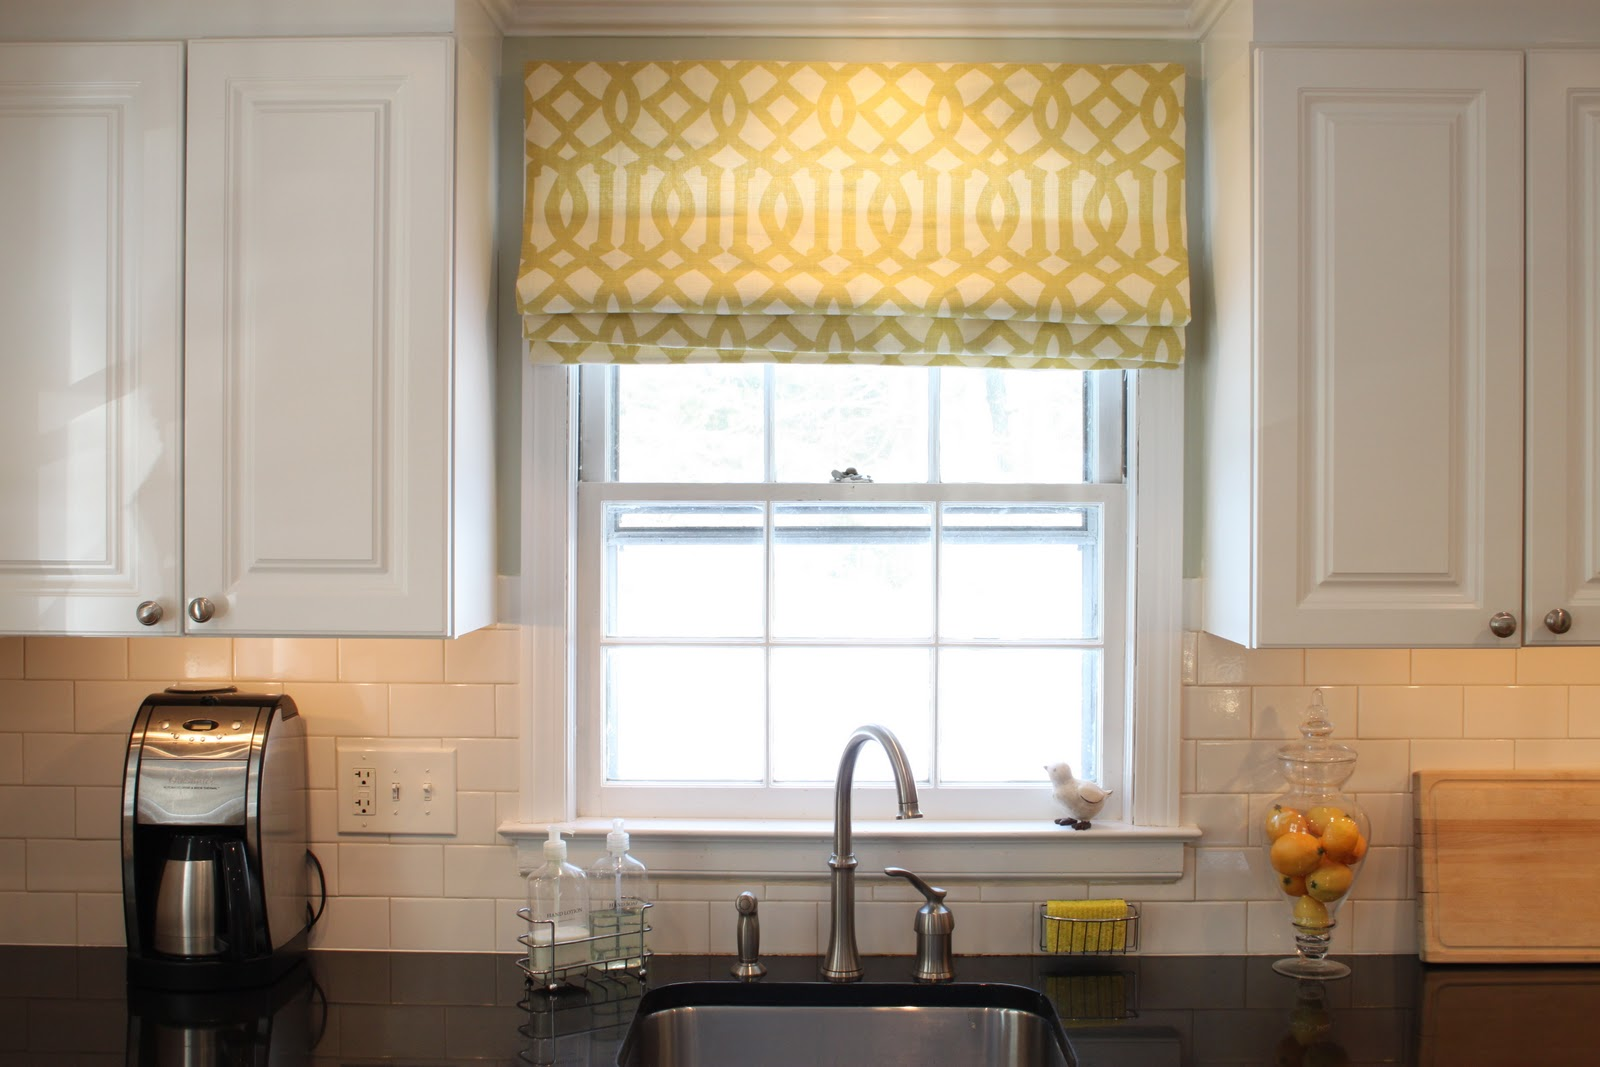 window treatments kitchen exhaust systems blinds 2017 grasscloth wallpaper